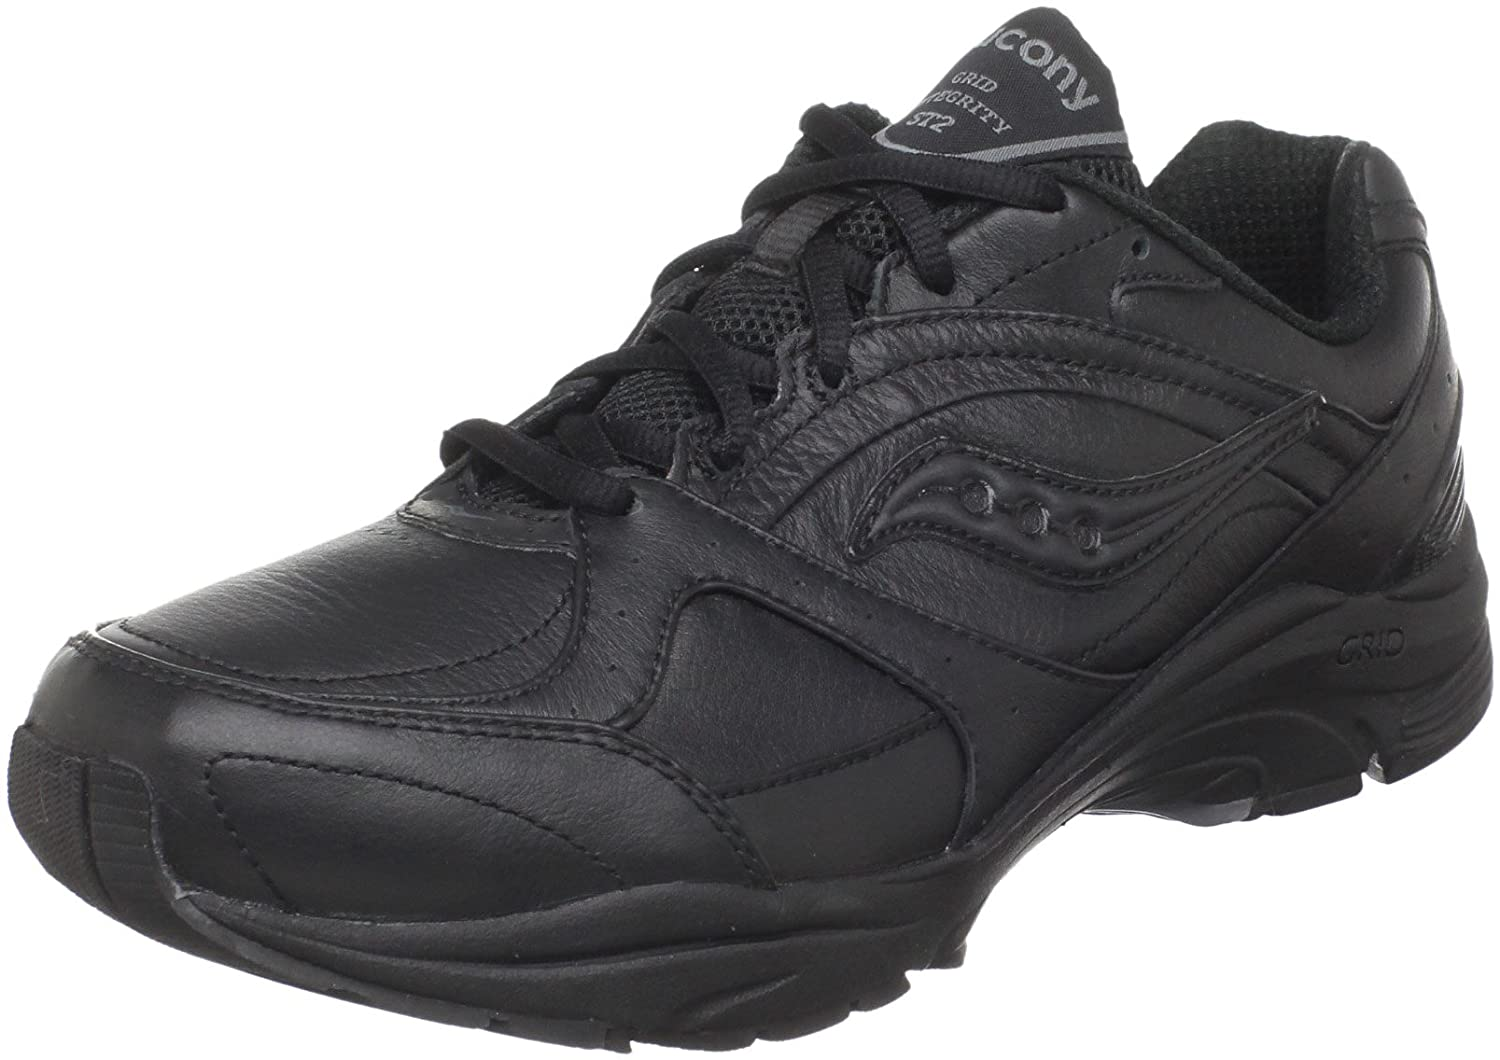 Saucony Women's ProGrid Integrity ST2 Walking Shoe B00413QU7E 12 B(M) US|Black/Grey